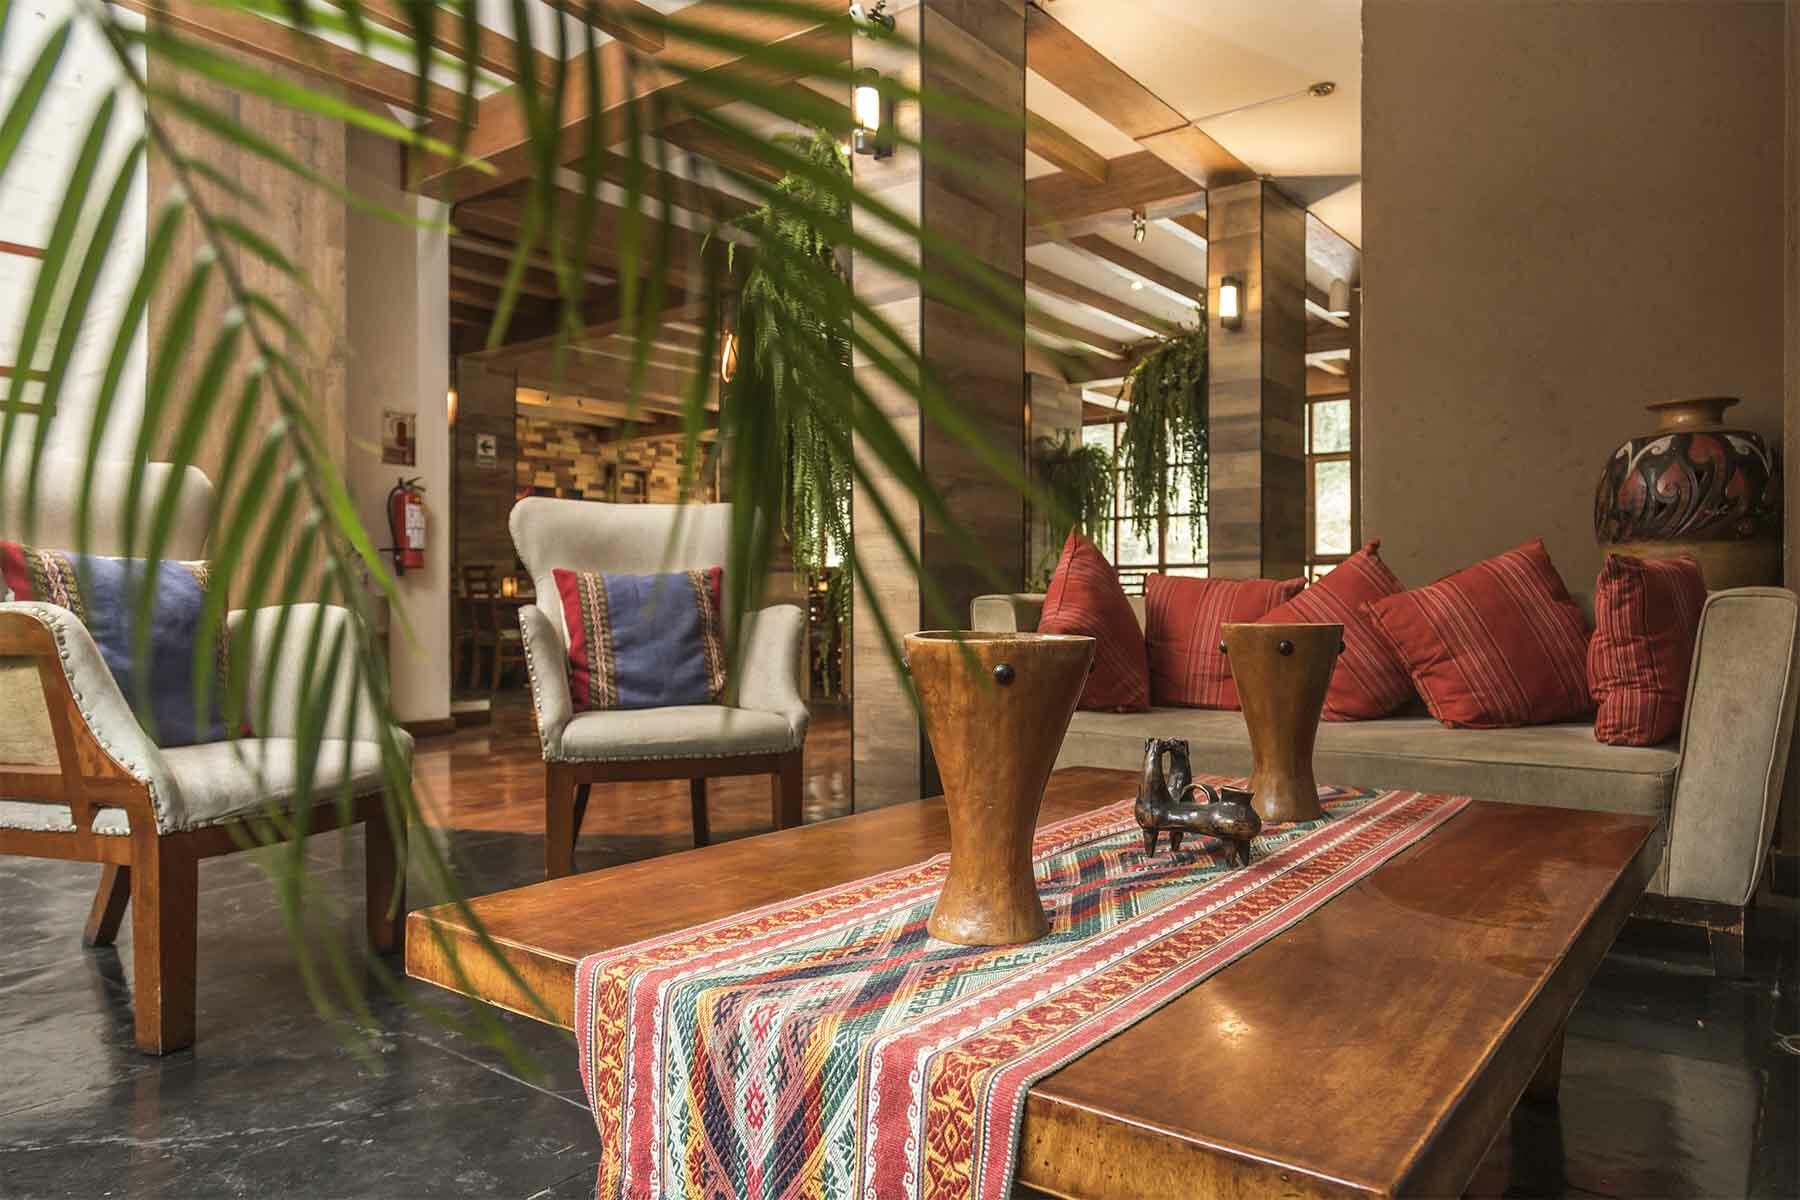 casa del sol lobby with seating area and coffee table